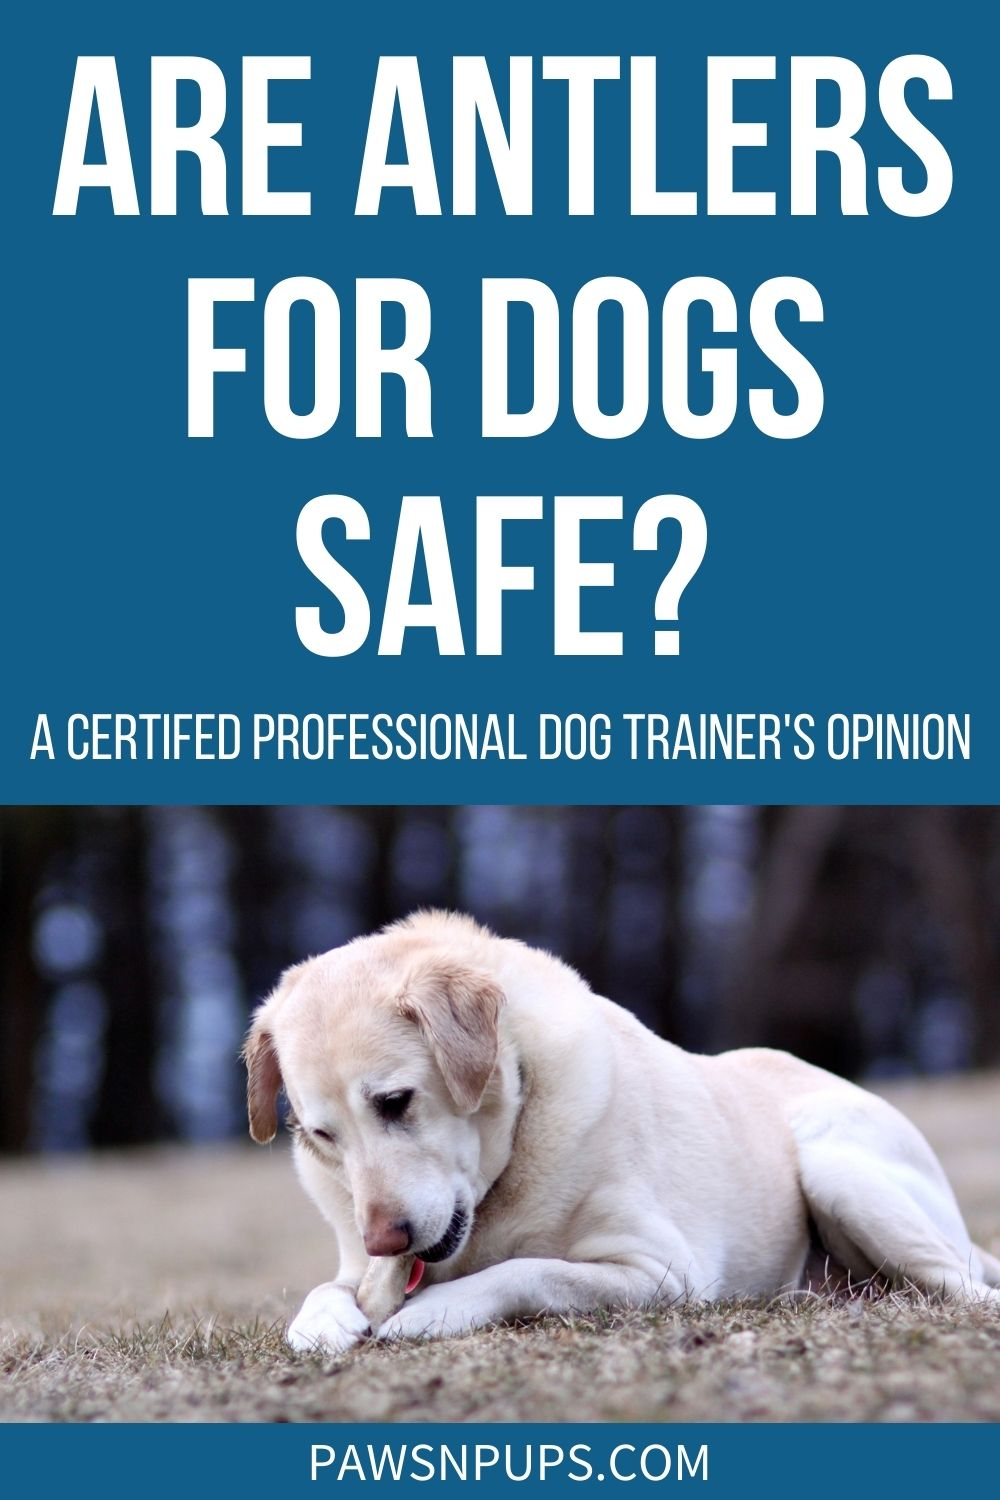 Are Antlers For Dogs Safe? - A Certified Professional Dog Trainer's Opinion - Yellow Lab chewing on antler in a field.